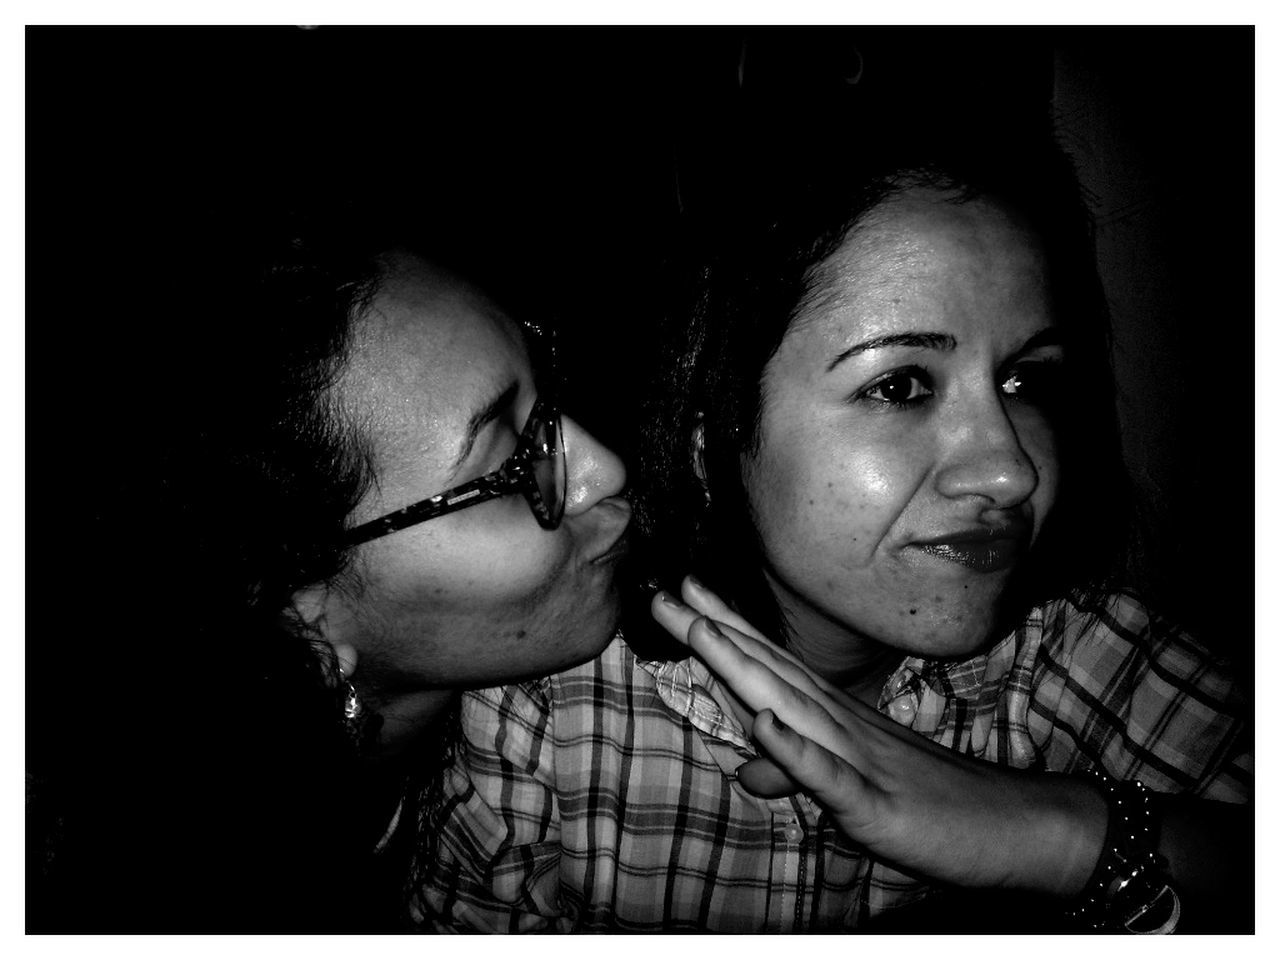 two people, togetherness, real people, head and shoulders, bonding, childhood, night, girls, close-up, friendship, black background, indoors, young women, young adult, people